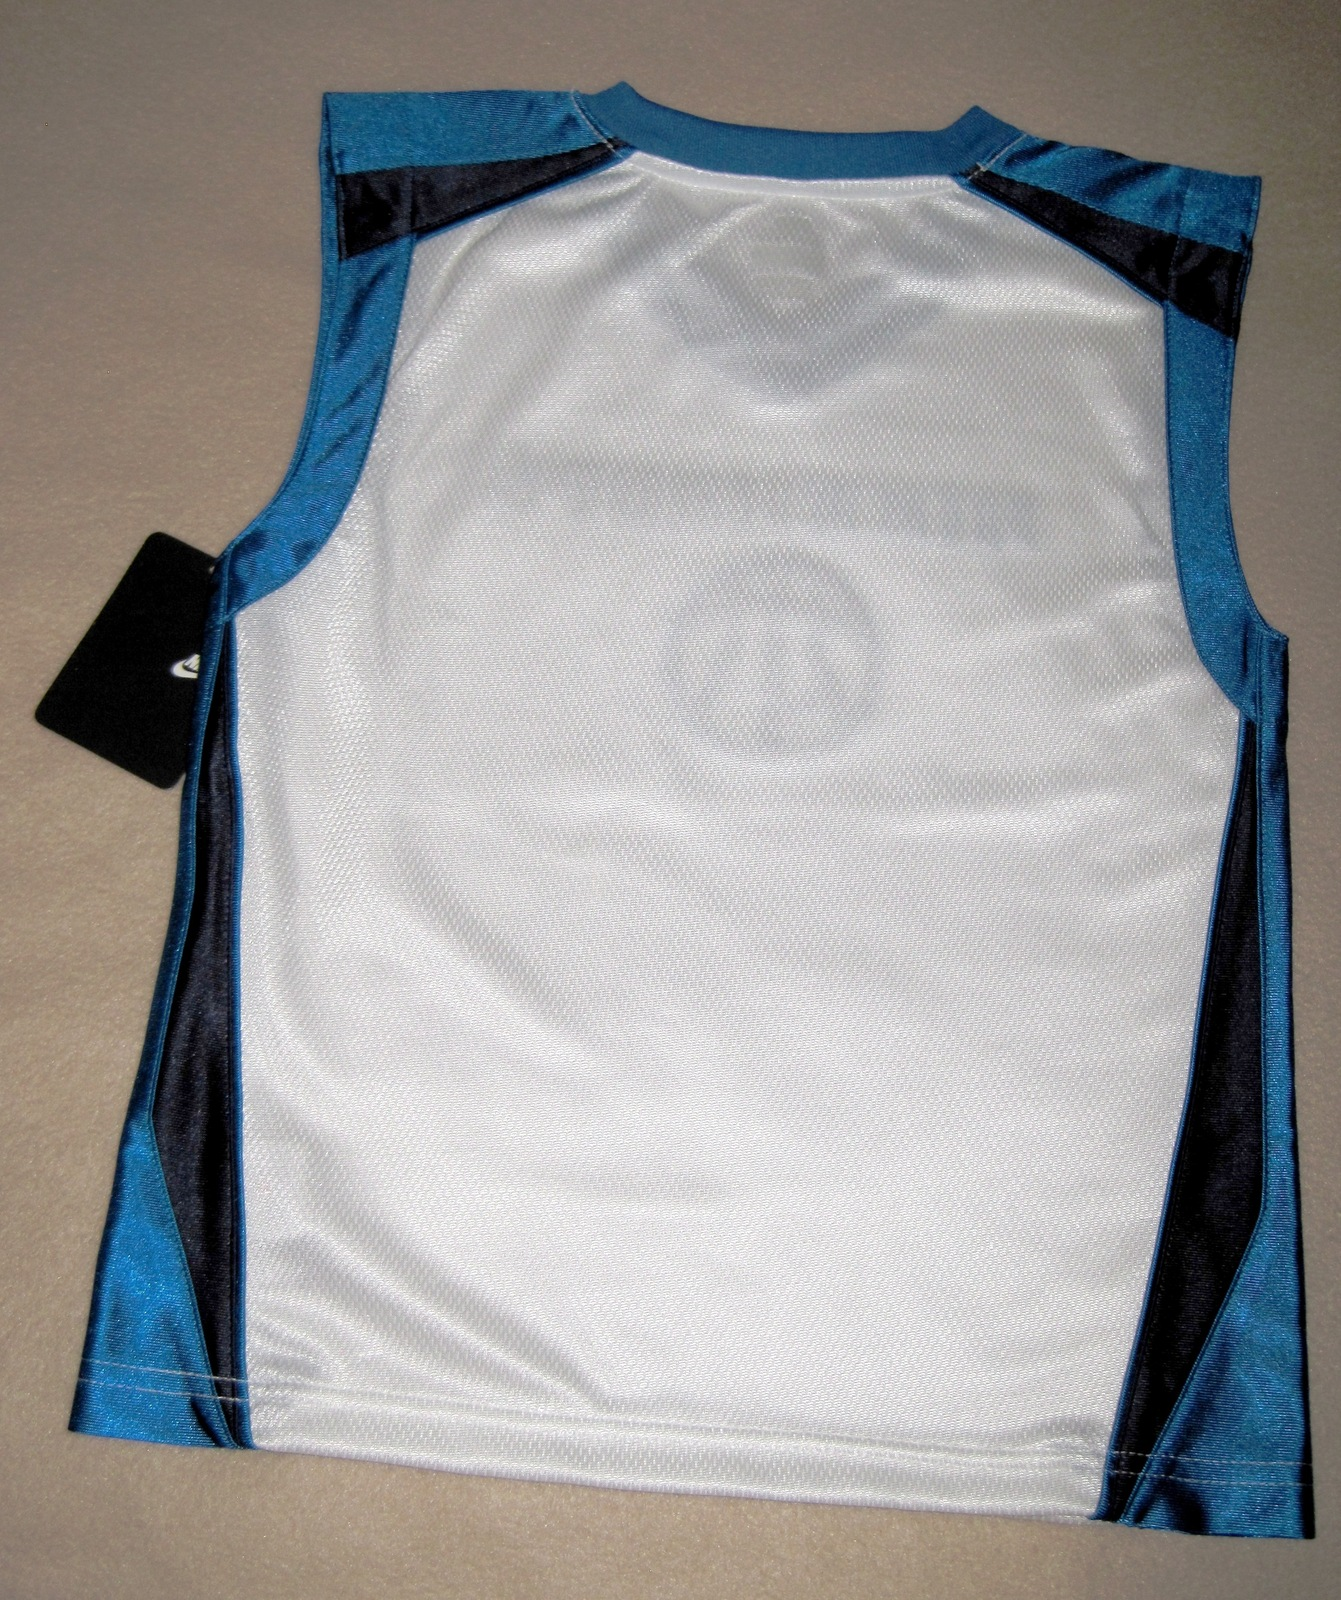 BOYS 6 - Nike Hoops - White-Electric Blue-Black BASKETBALL SPORTS JERSEY image 11